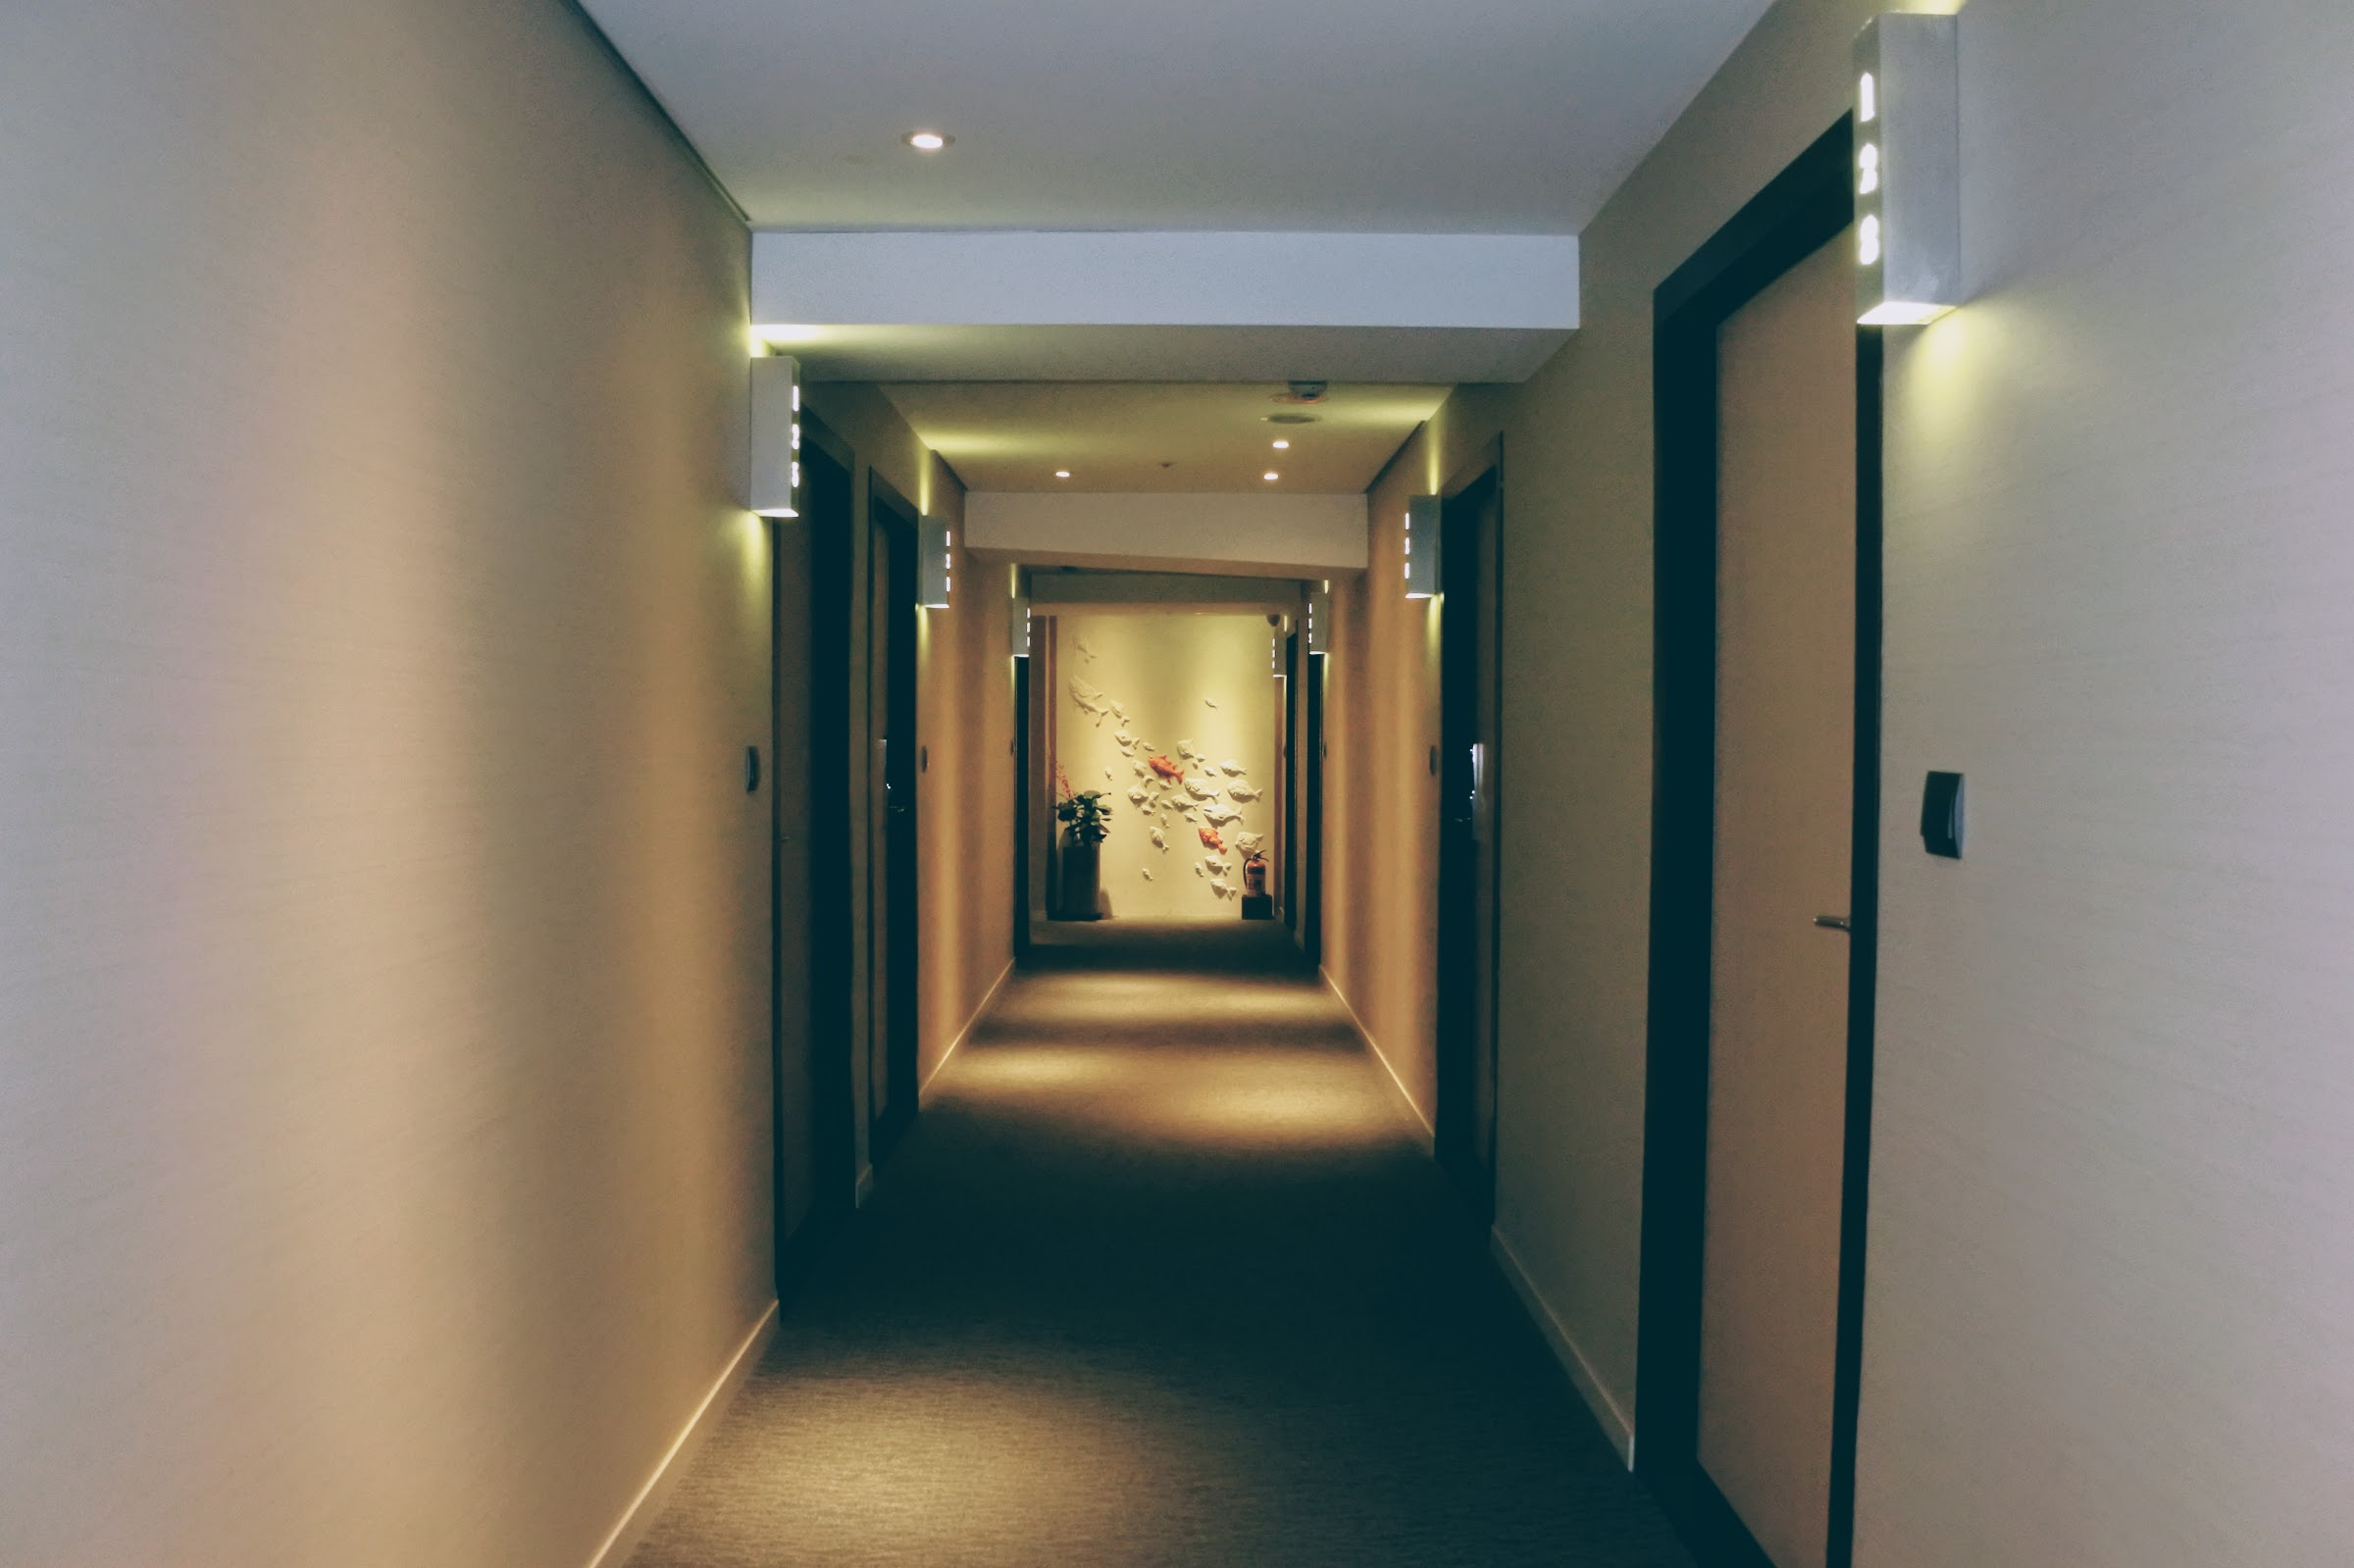 The hallway to the rooms